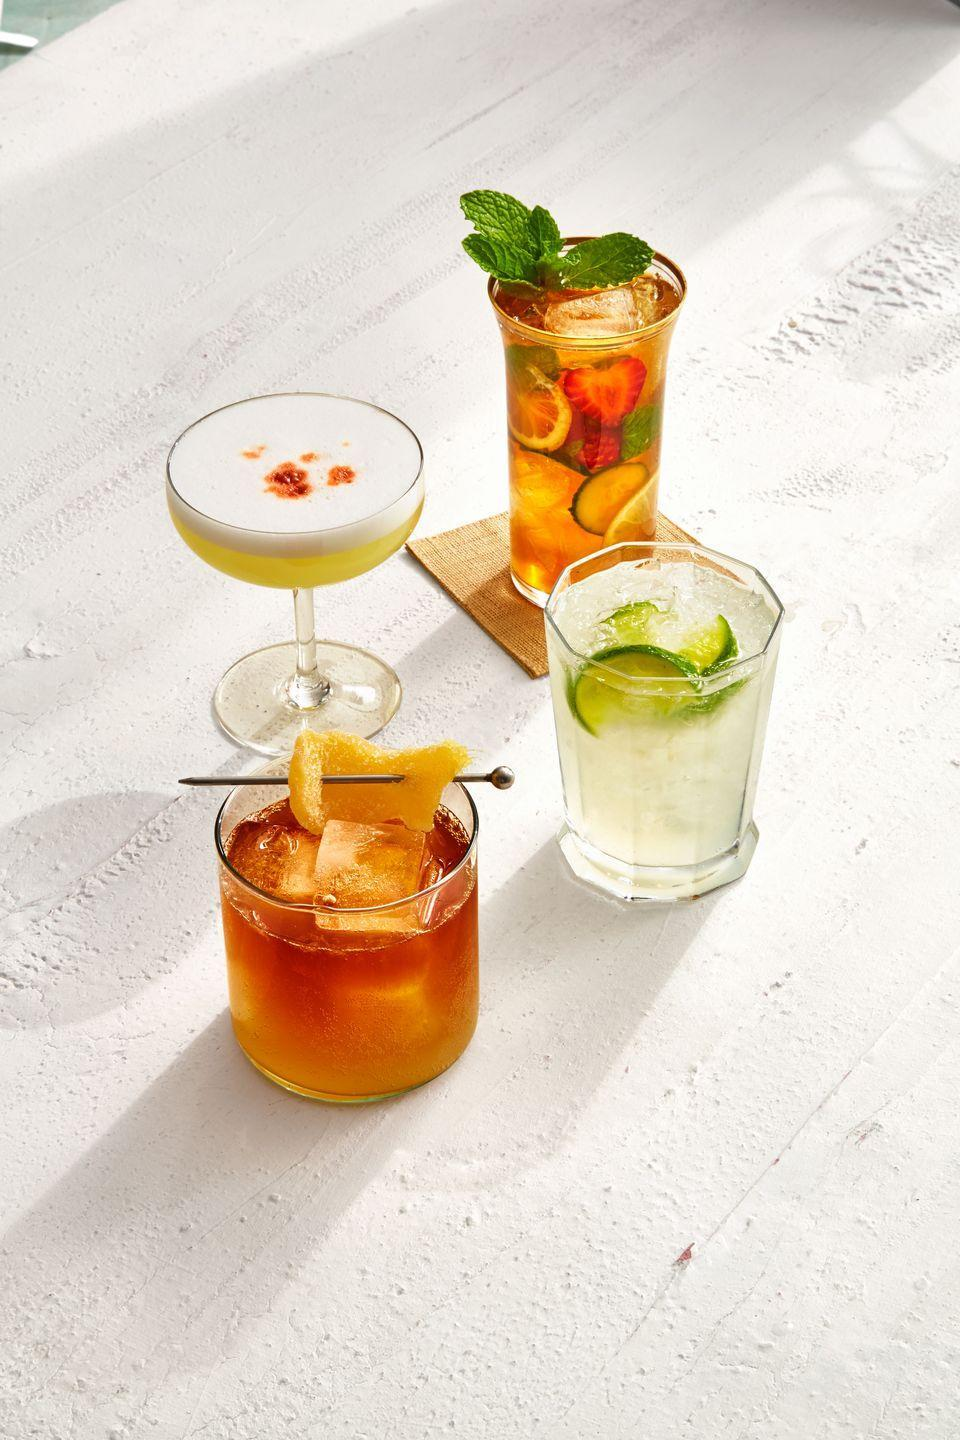 """<p>A type of spirit similar to rum, cachaça is the base of this simple Brazilian cocktail. One origin story: the combo was first consumed in place of water during cholera outbreaks in the 1850s. We don't suggest that, but we do suggest sipping it on a hot summer day.</p><p><em><a href=""""https://www.goodhousekeeping.com/food-recipes/a28713945/classic-caipirinha-recipe/"""" rel=""""nofollow noopener"""" target=""""_blank"""" data-ylk=""""slk:Get the recipe for Classic Caipirinha »"""" class=""""link rapid-noclick-resp"""">Get the recipe for Classic Caipirinha »</a></em></p>"""